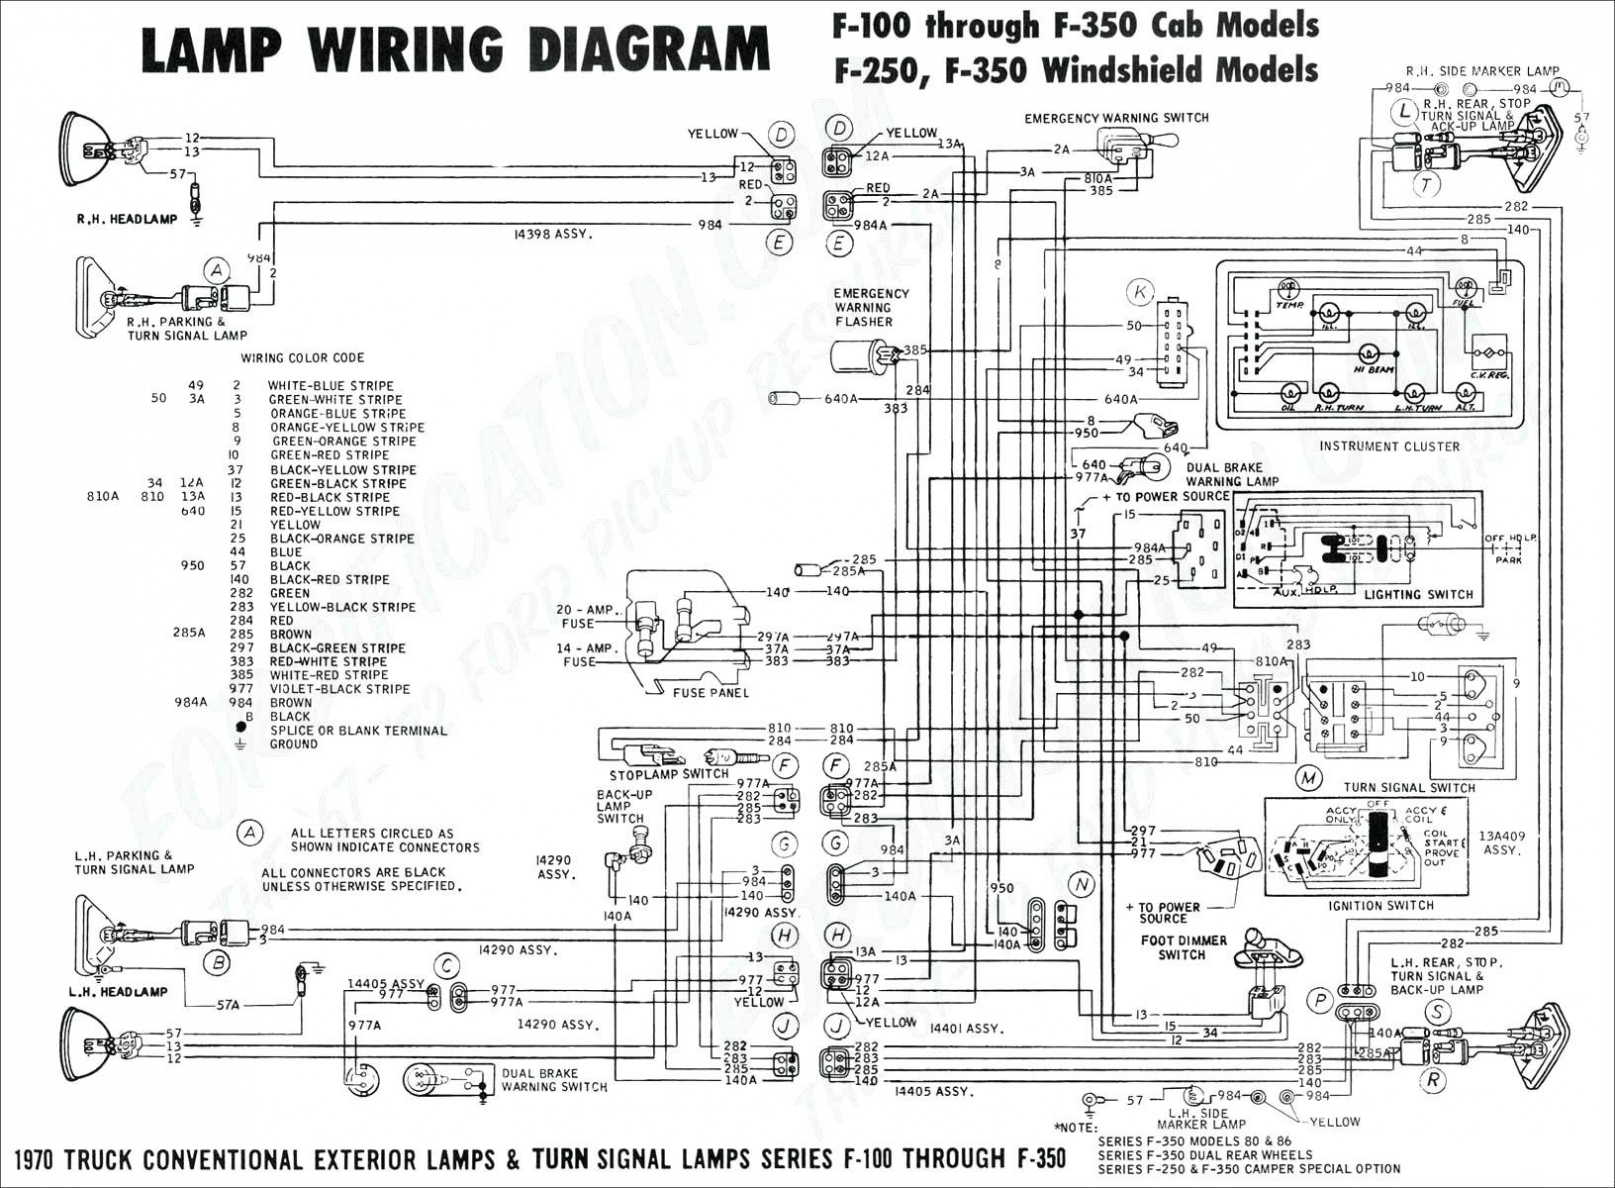 Stereo Wiring Diagram As Well 1998 Ford Mustang V6 Heater Hose Diagram